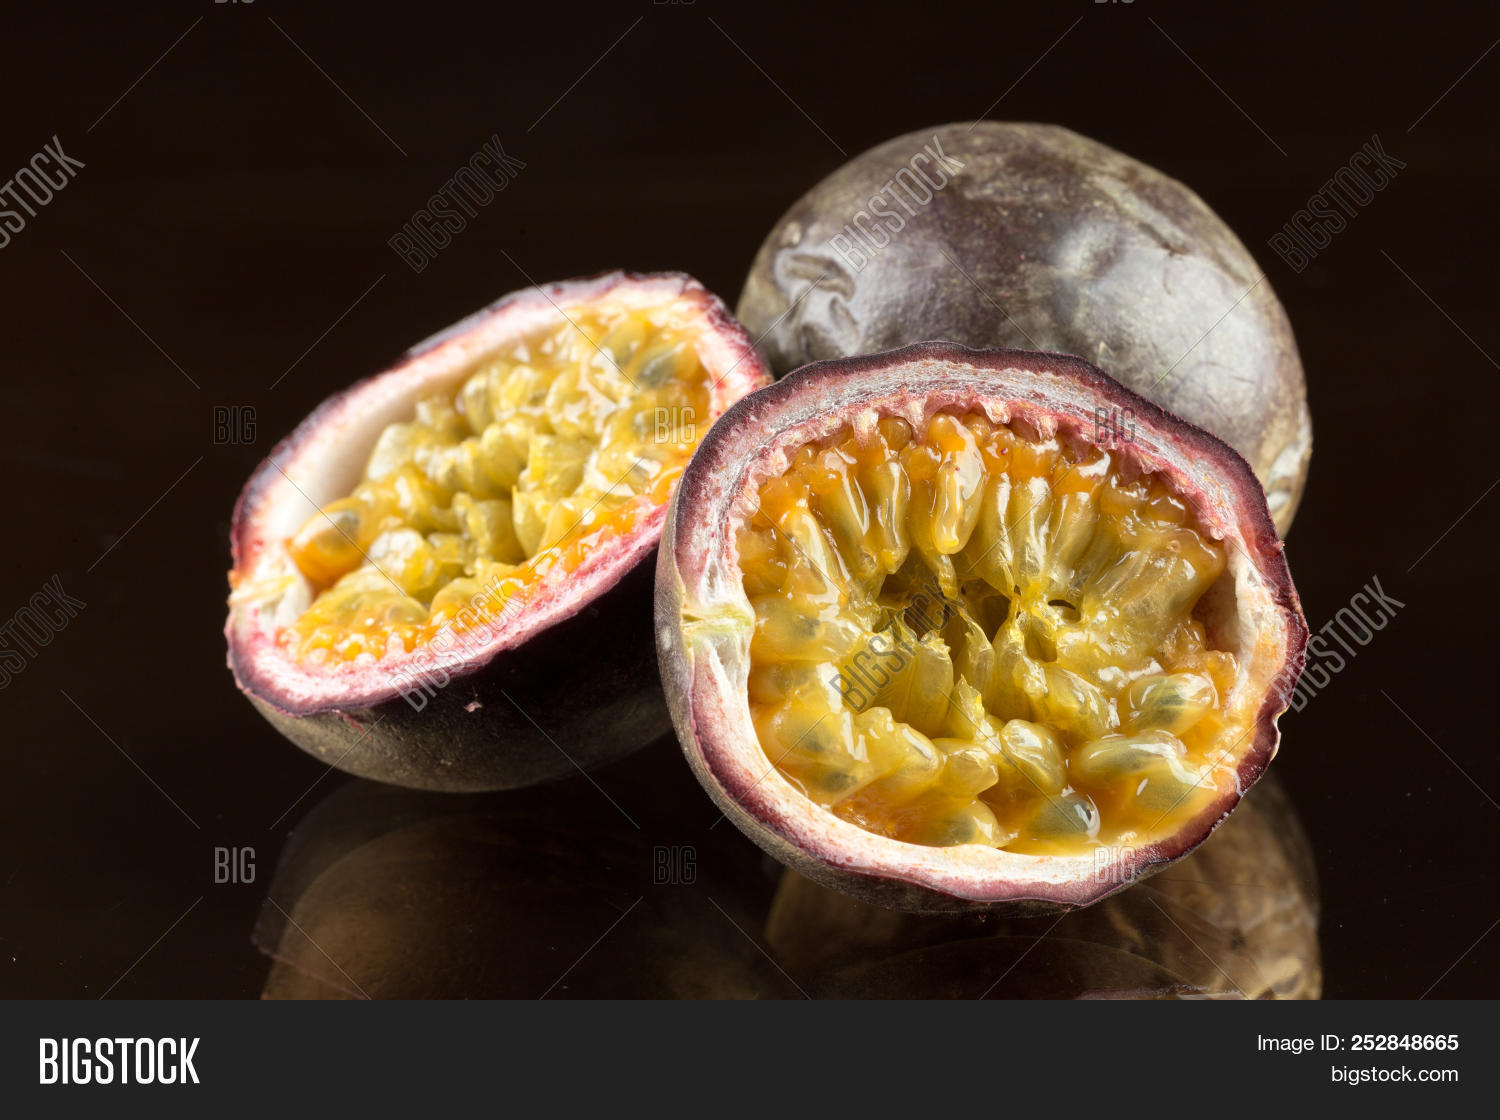 background,brazil,bright,closeup,color,core,cut,delicious,dessert,diet,drink,exotic,food,fresh,freshness,fruit,glass,gourmet,granadilla,green,half,healthy,juice,juicy,leaf,maracuja,maracujasaft,maracuya,natural,nature,nobody,open,passion,passion-fruit,passionfruit,refresh,refreshment,ripe,seed,sweet,tasty,tropical,tube,water,wooden,yellow